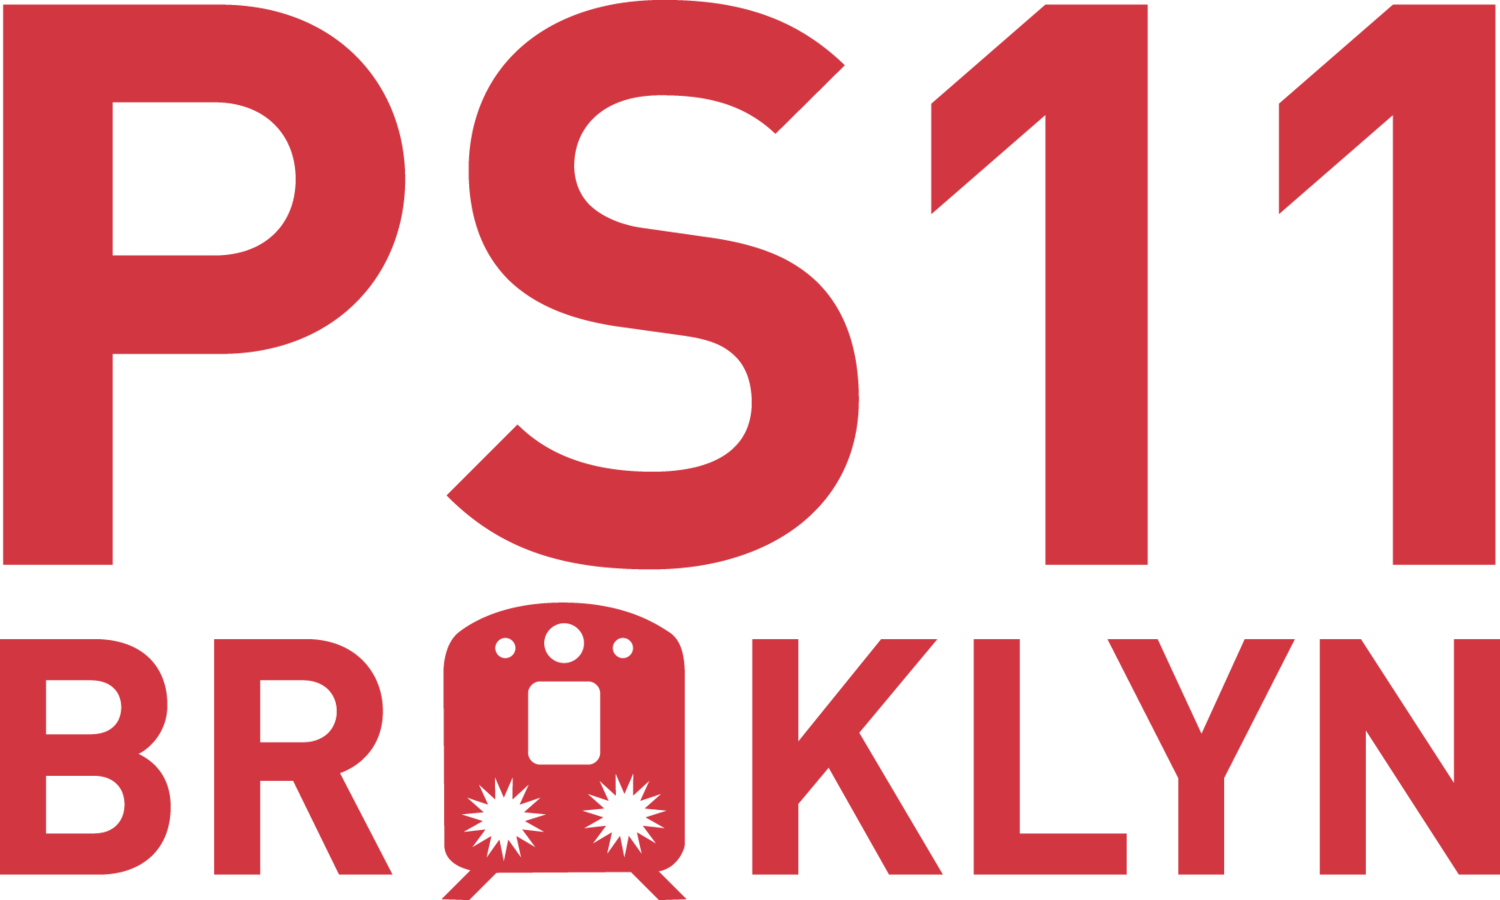 PS 11 • Brooklyn